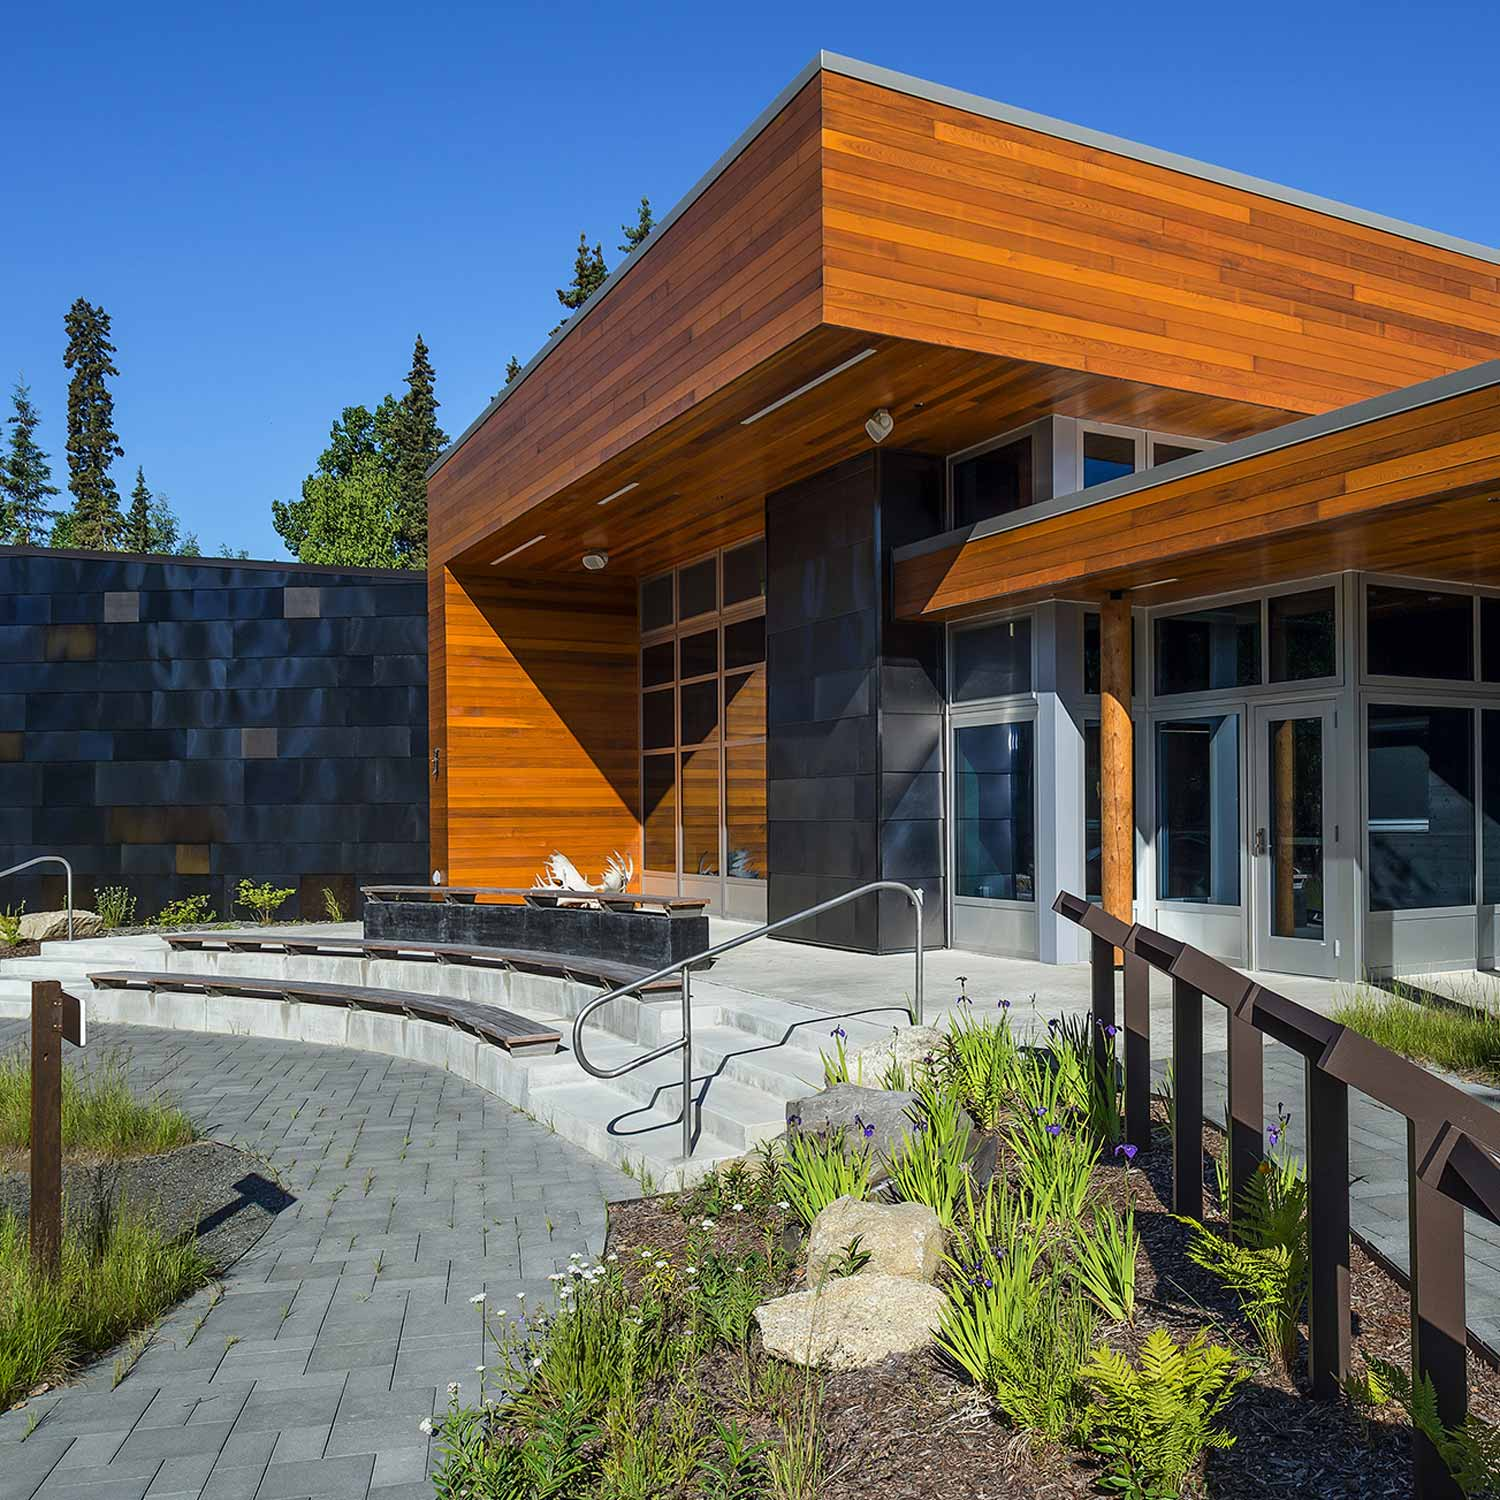 Government design for Kenai National Wildlife Refuge Visitor Education Center in Soldotna, Alaska